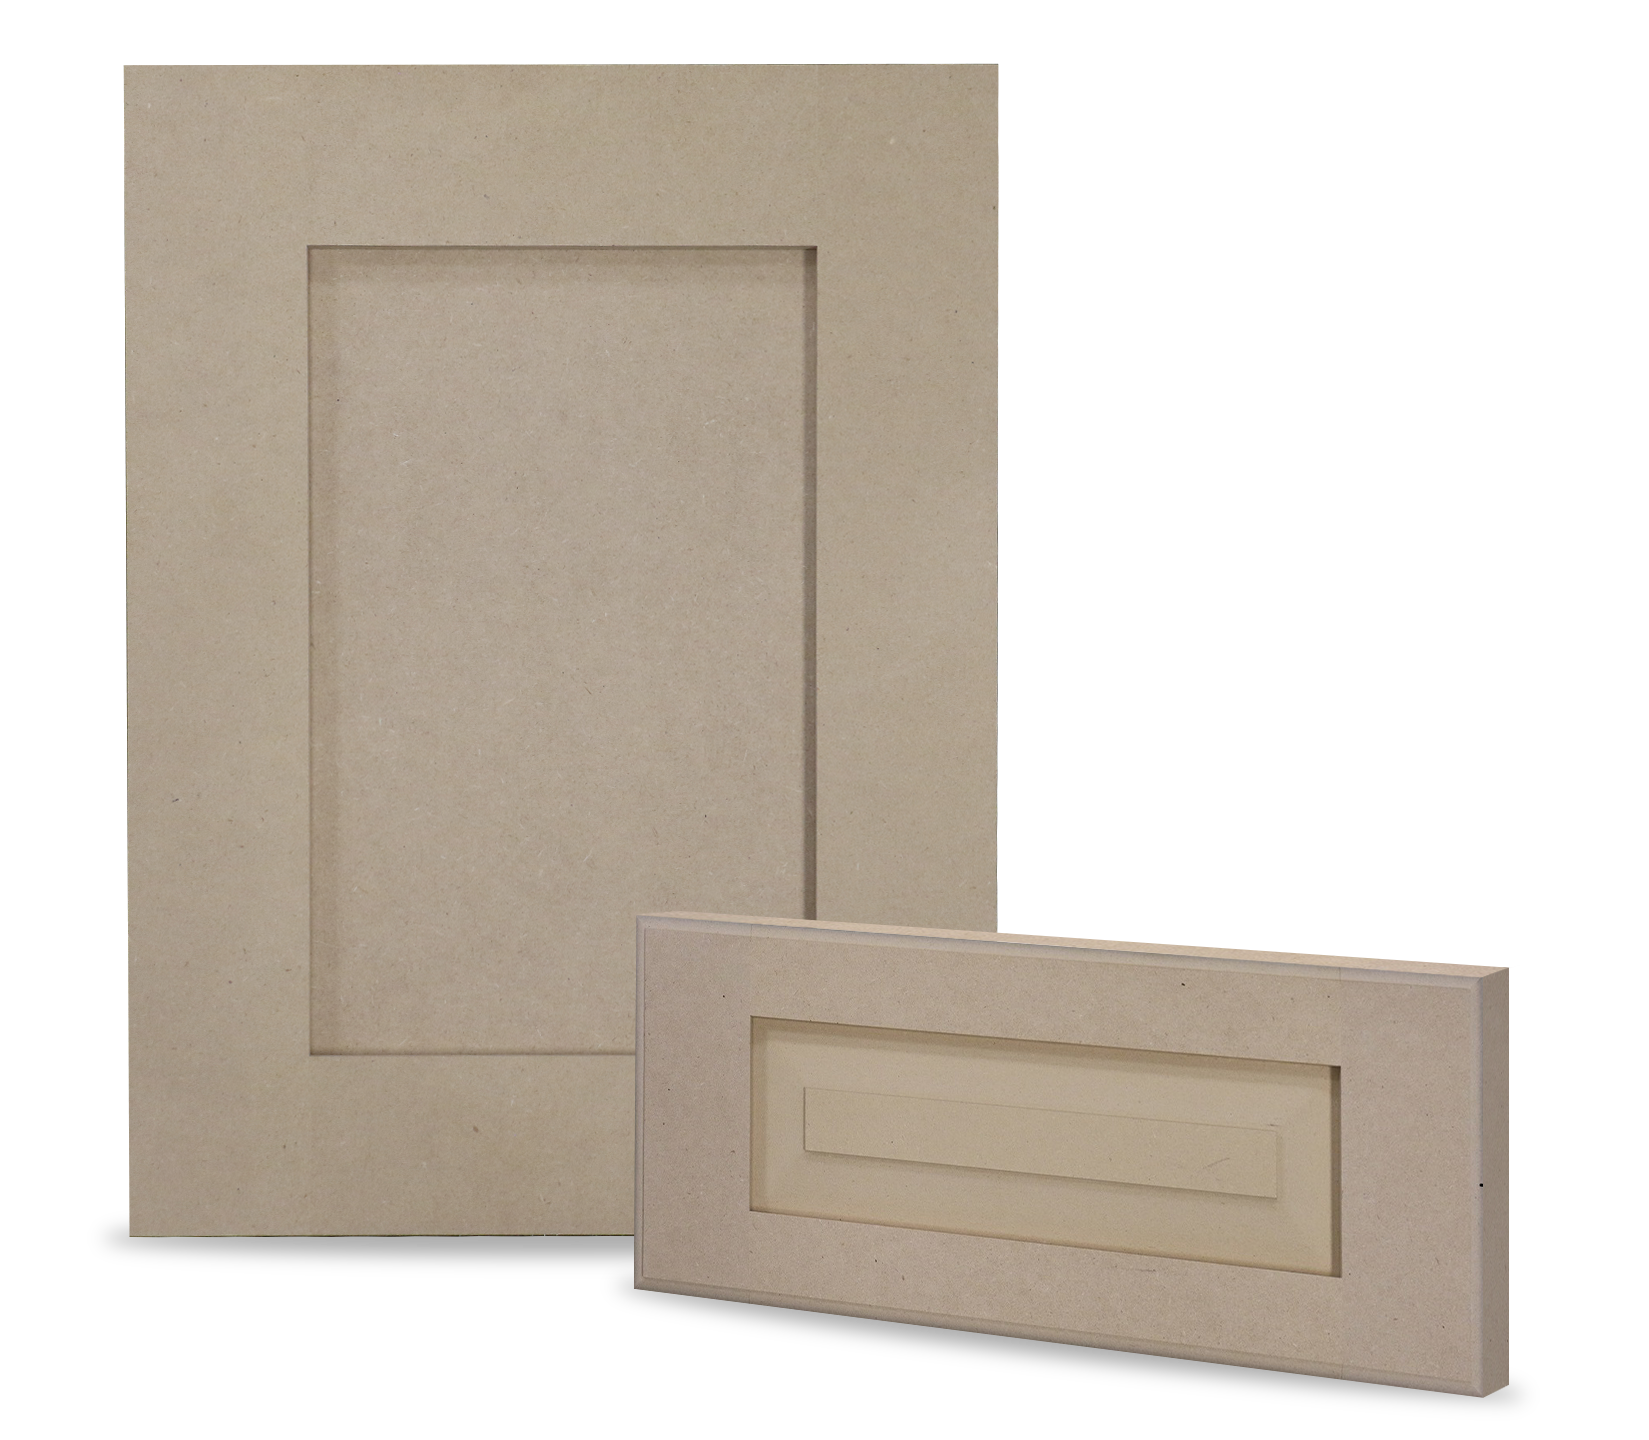 Cabinet doors n more has introduced mdf medium density fiberboard cabinet doors